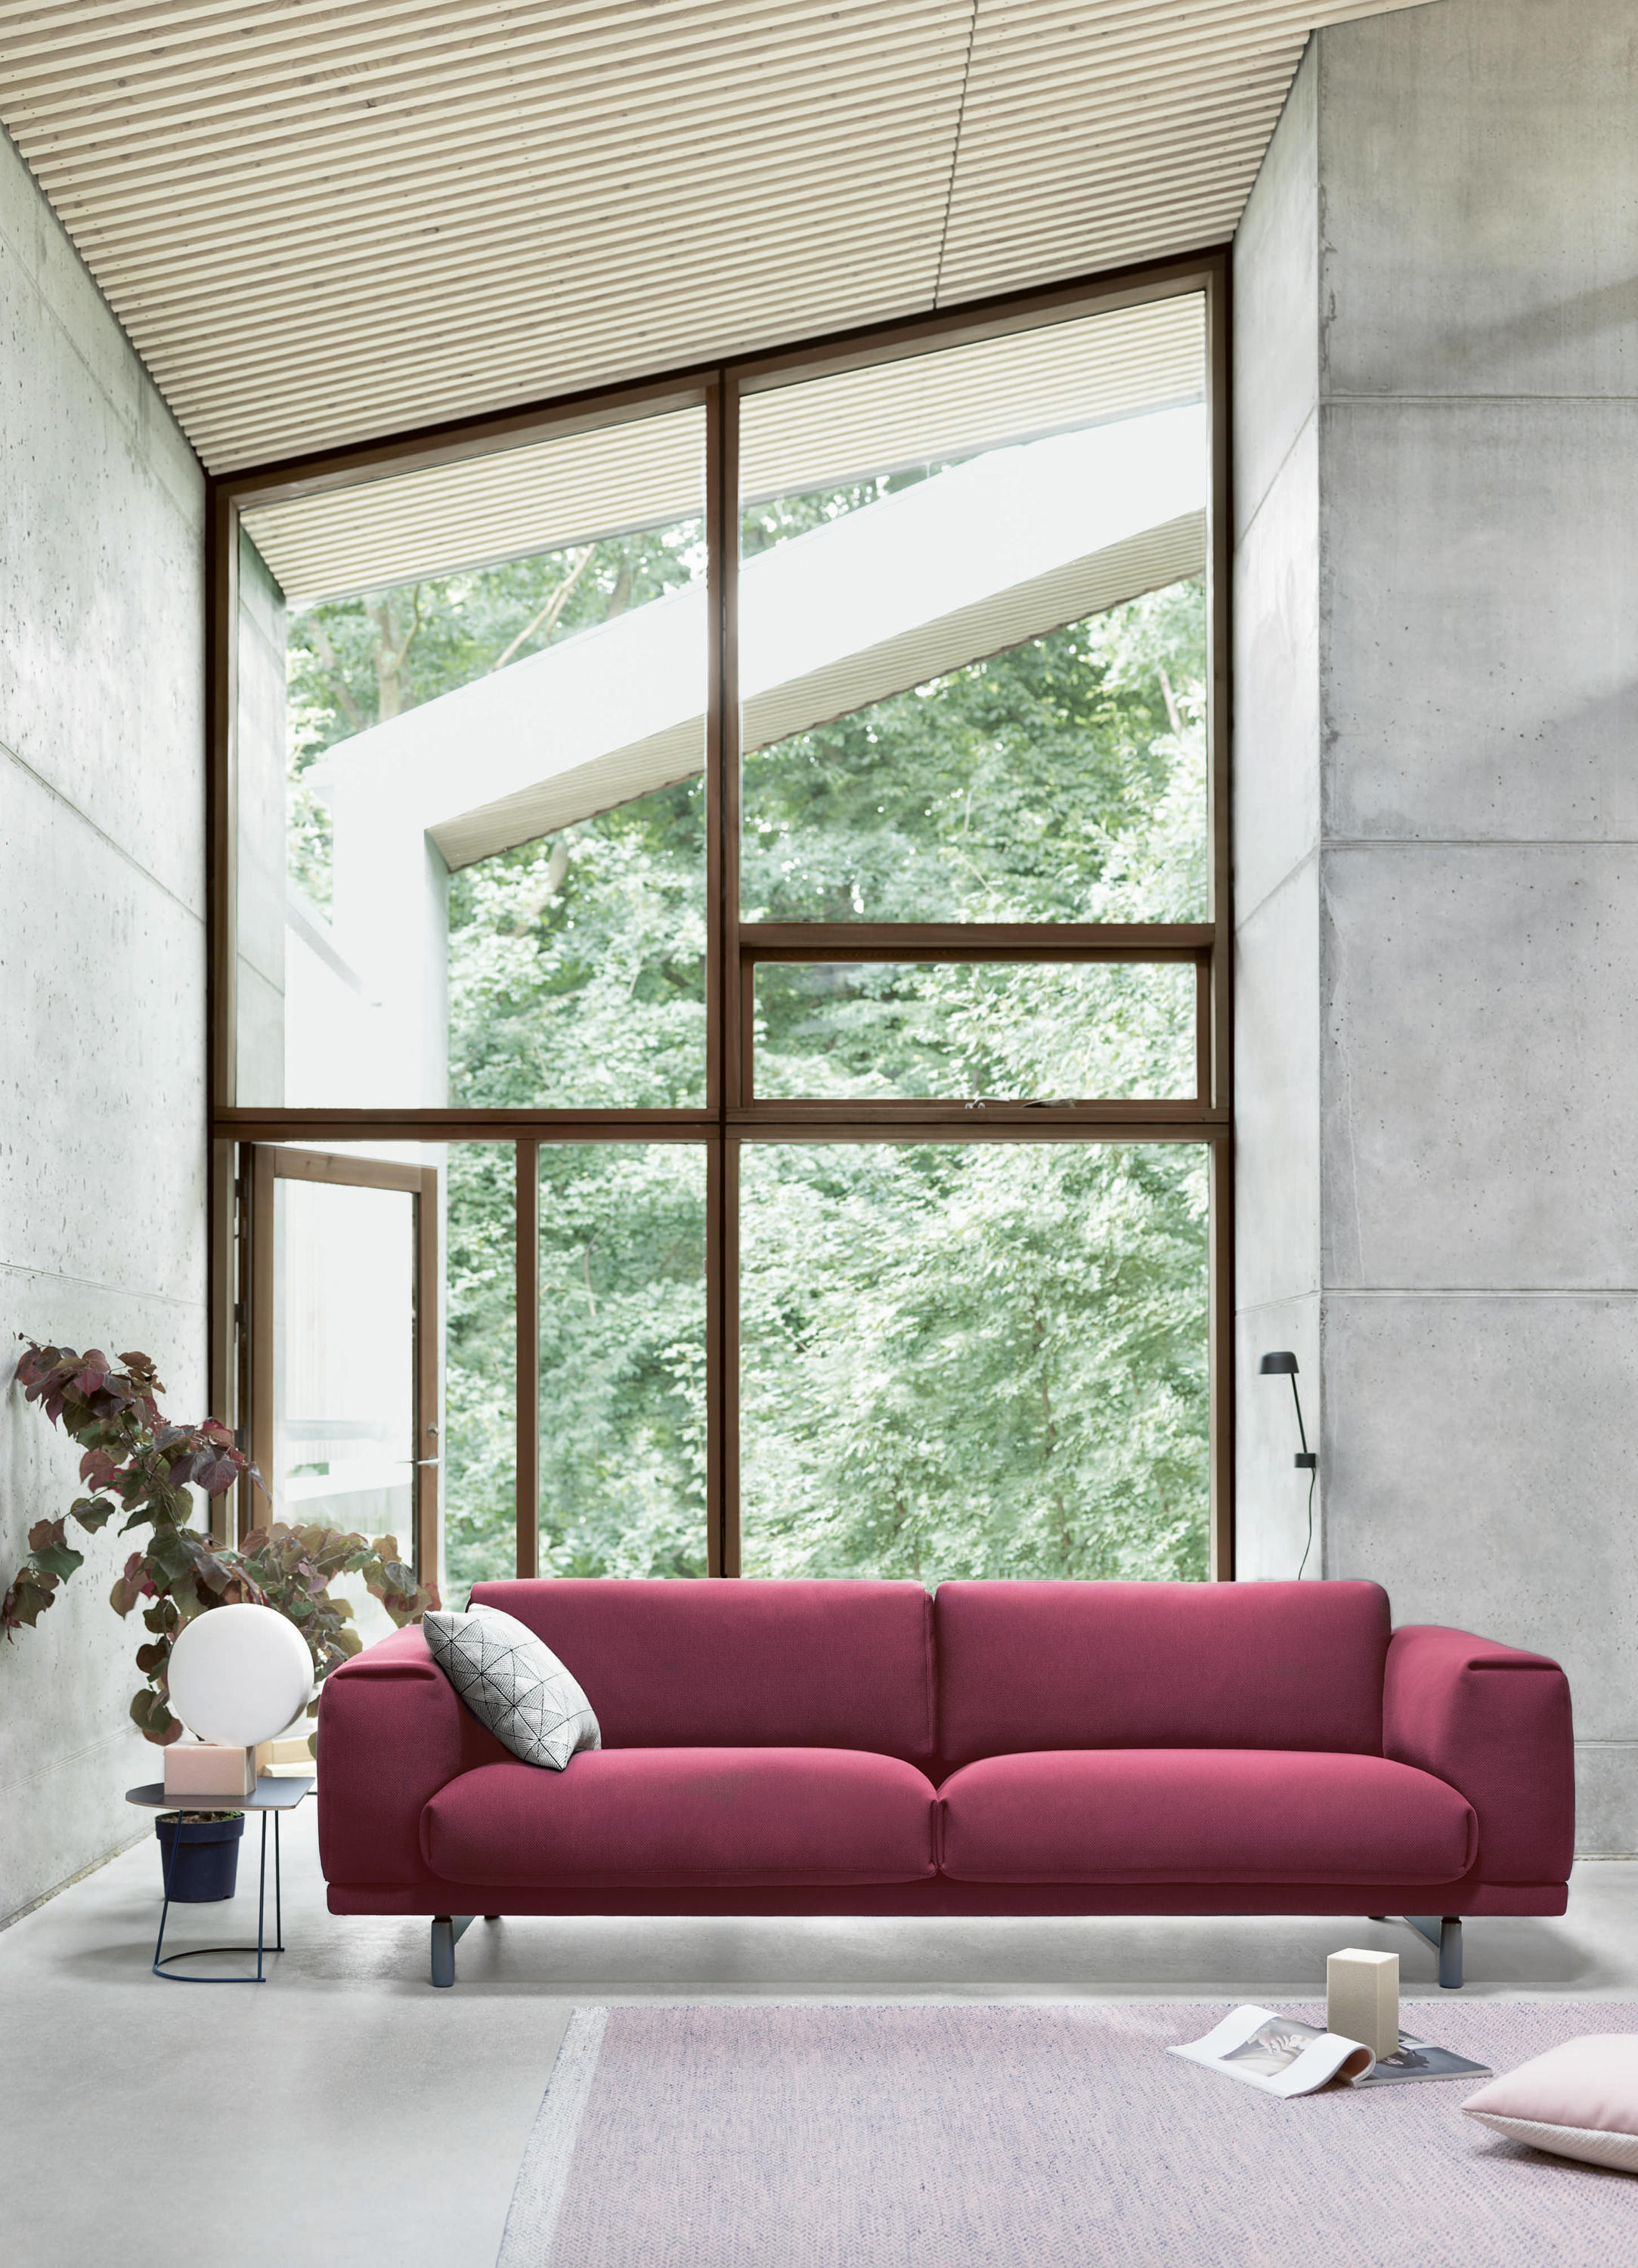 Remarkable Rest 2 Seater Sofas From Muuto Architonic Interior Design Ideas Inamawefileorg